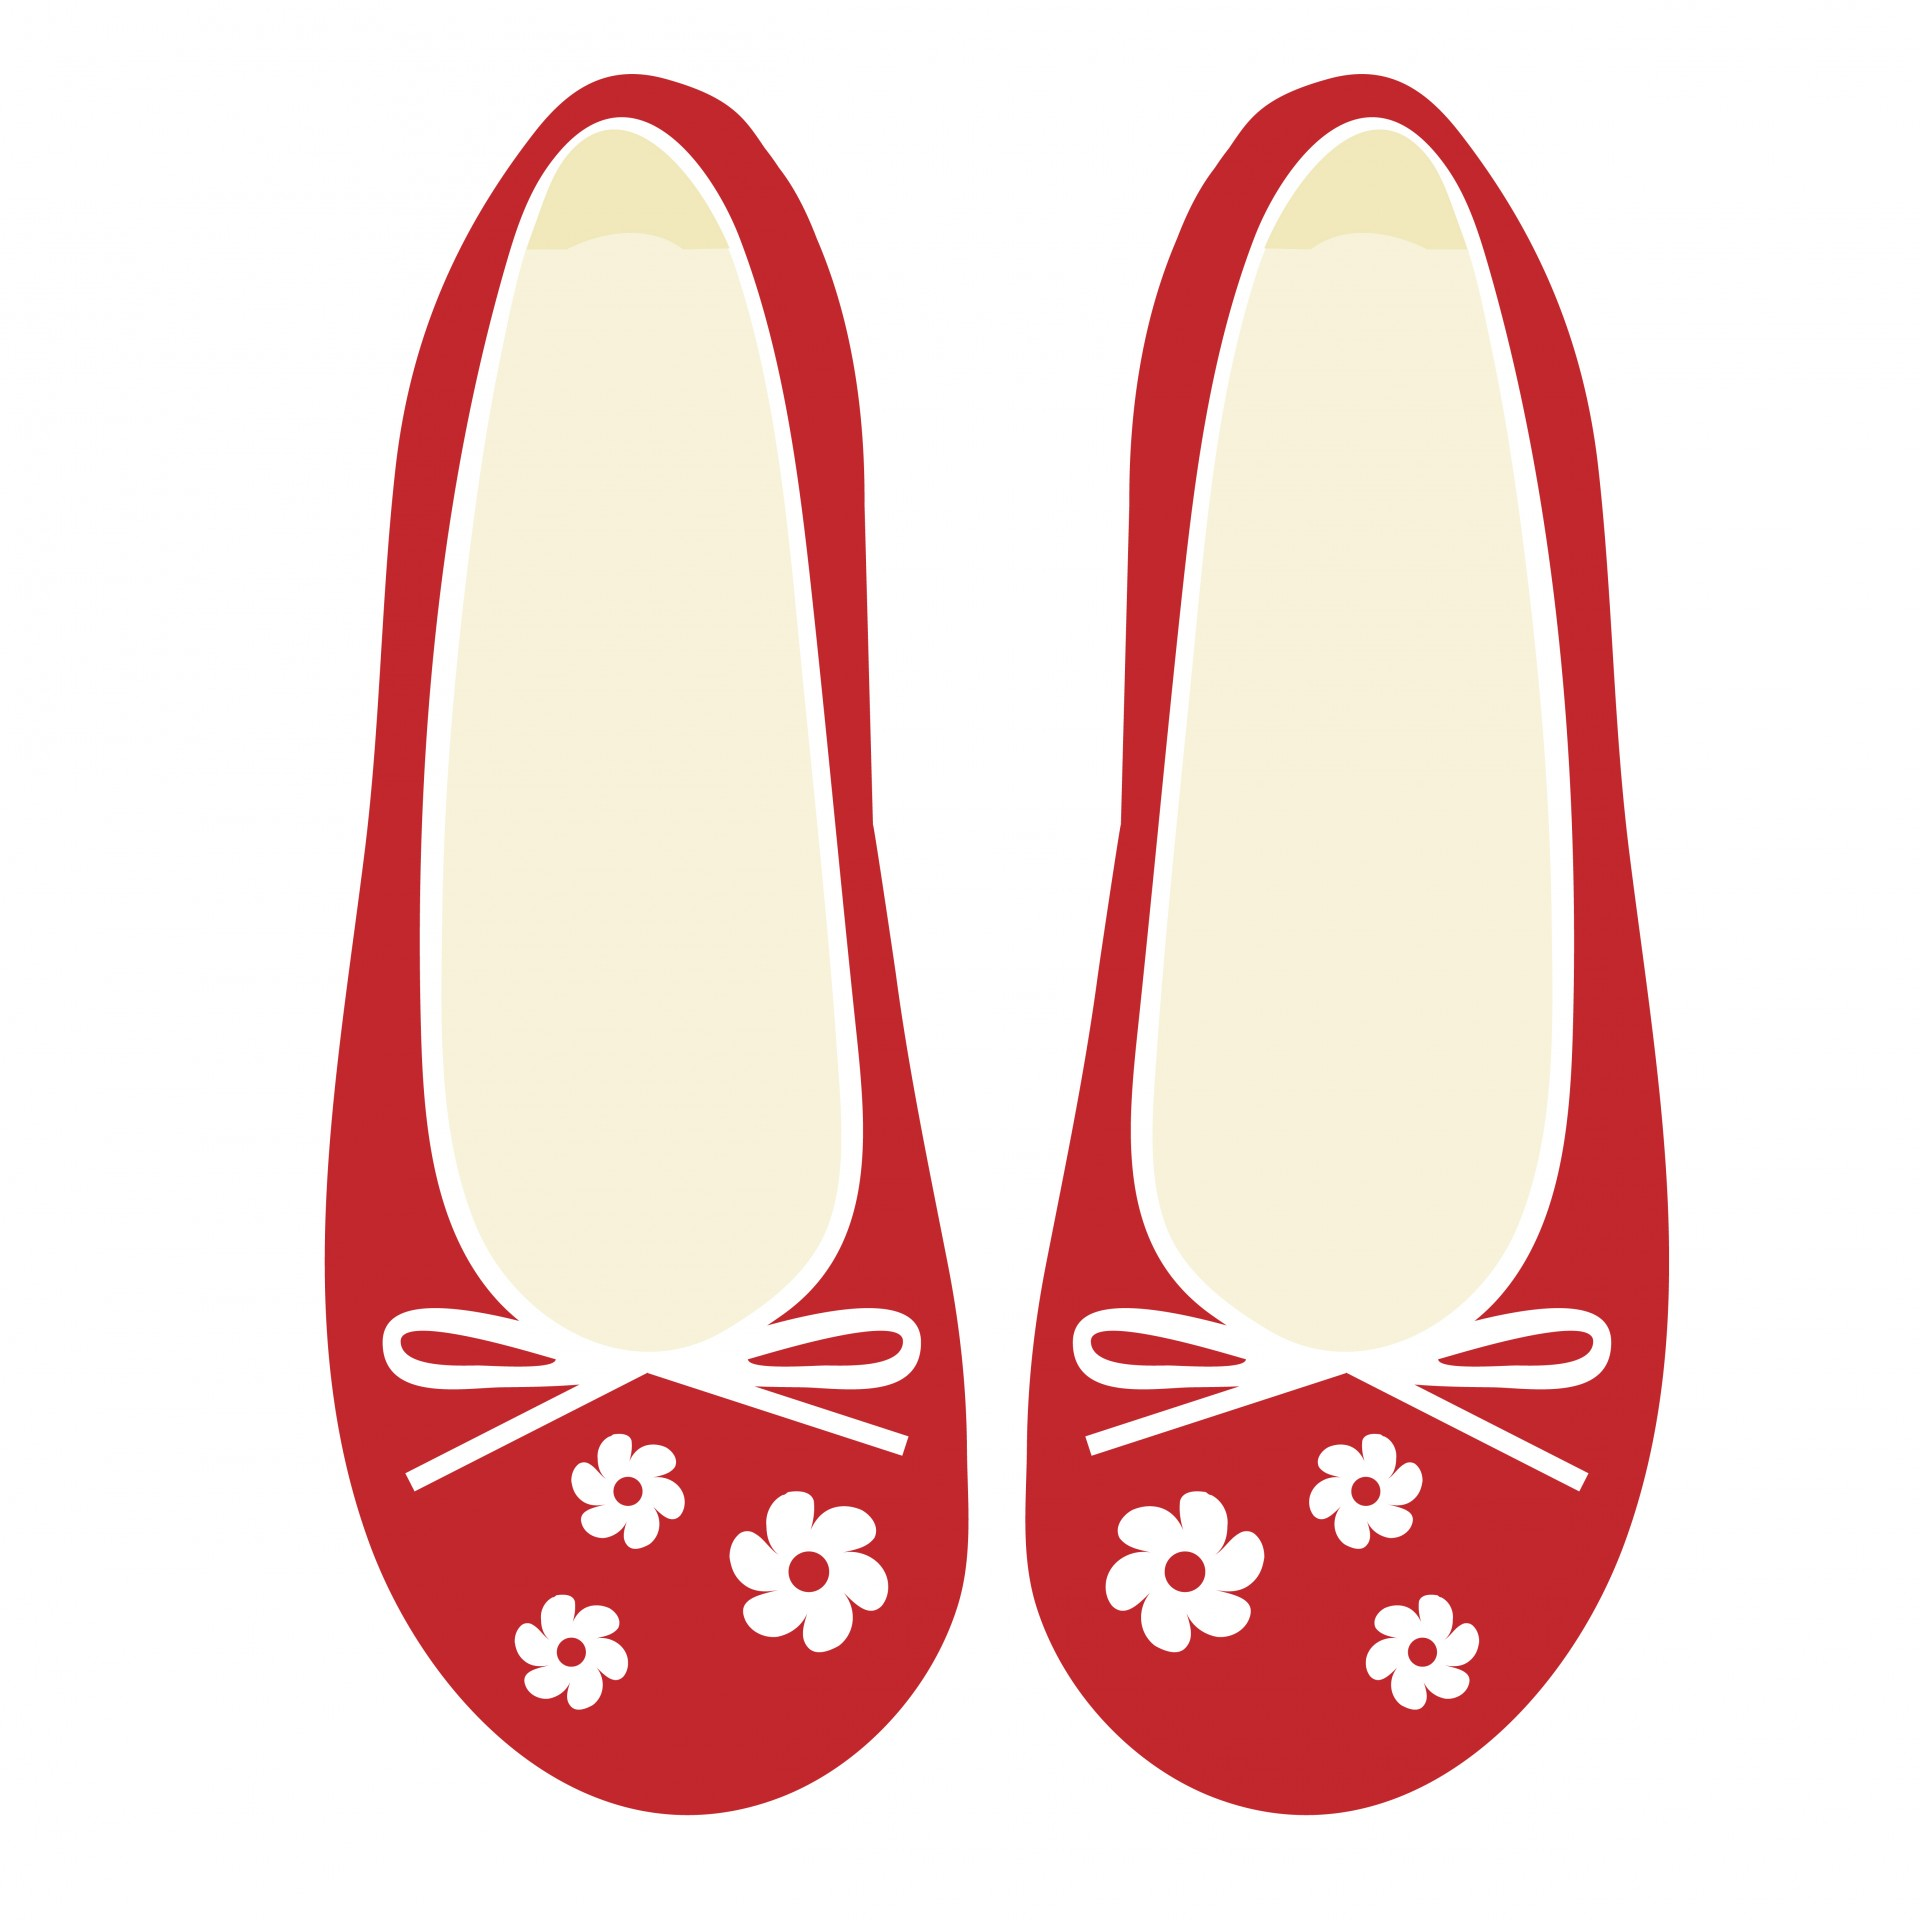 Heels clipart doll shoe. Free sneaker cliparts download